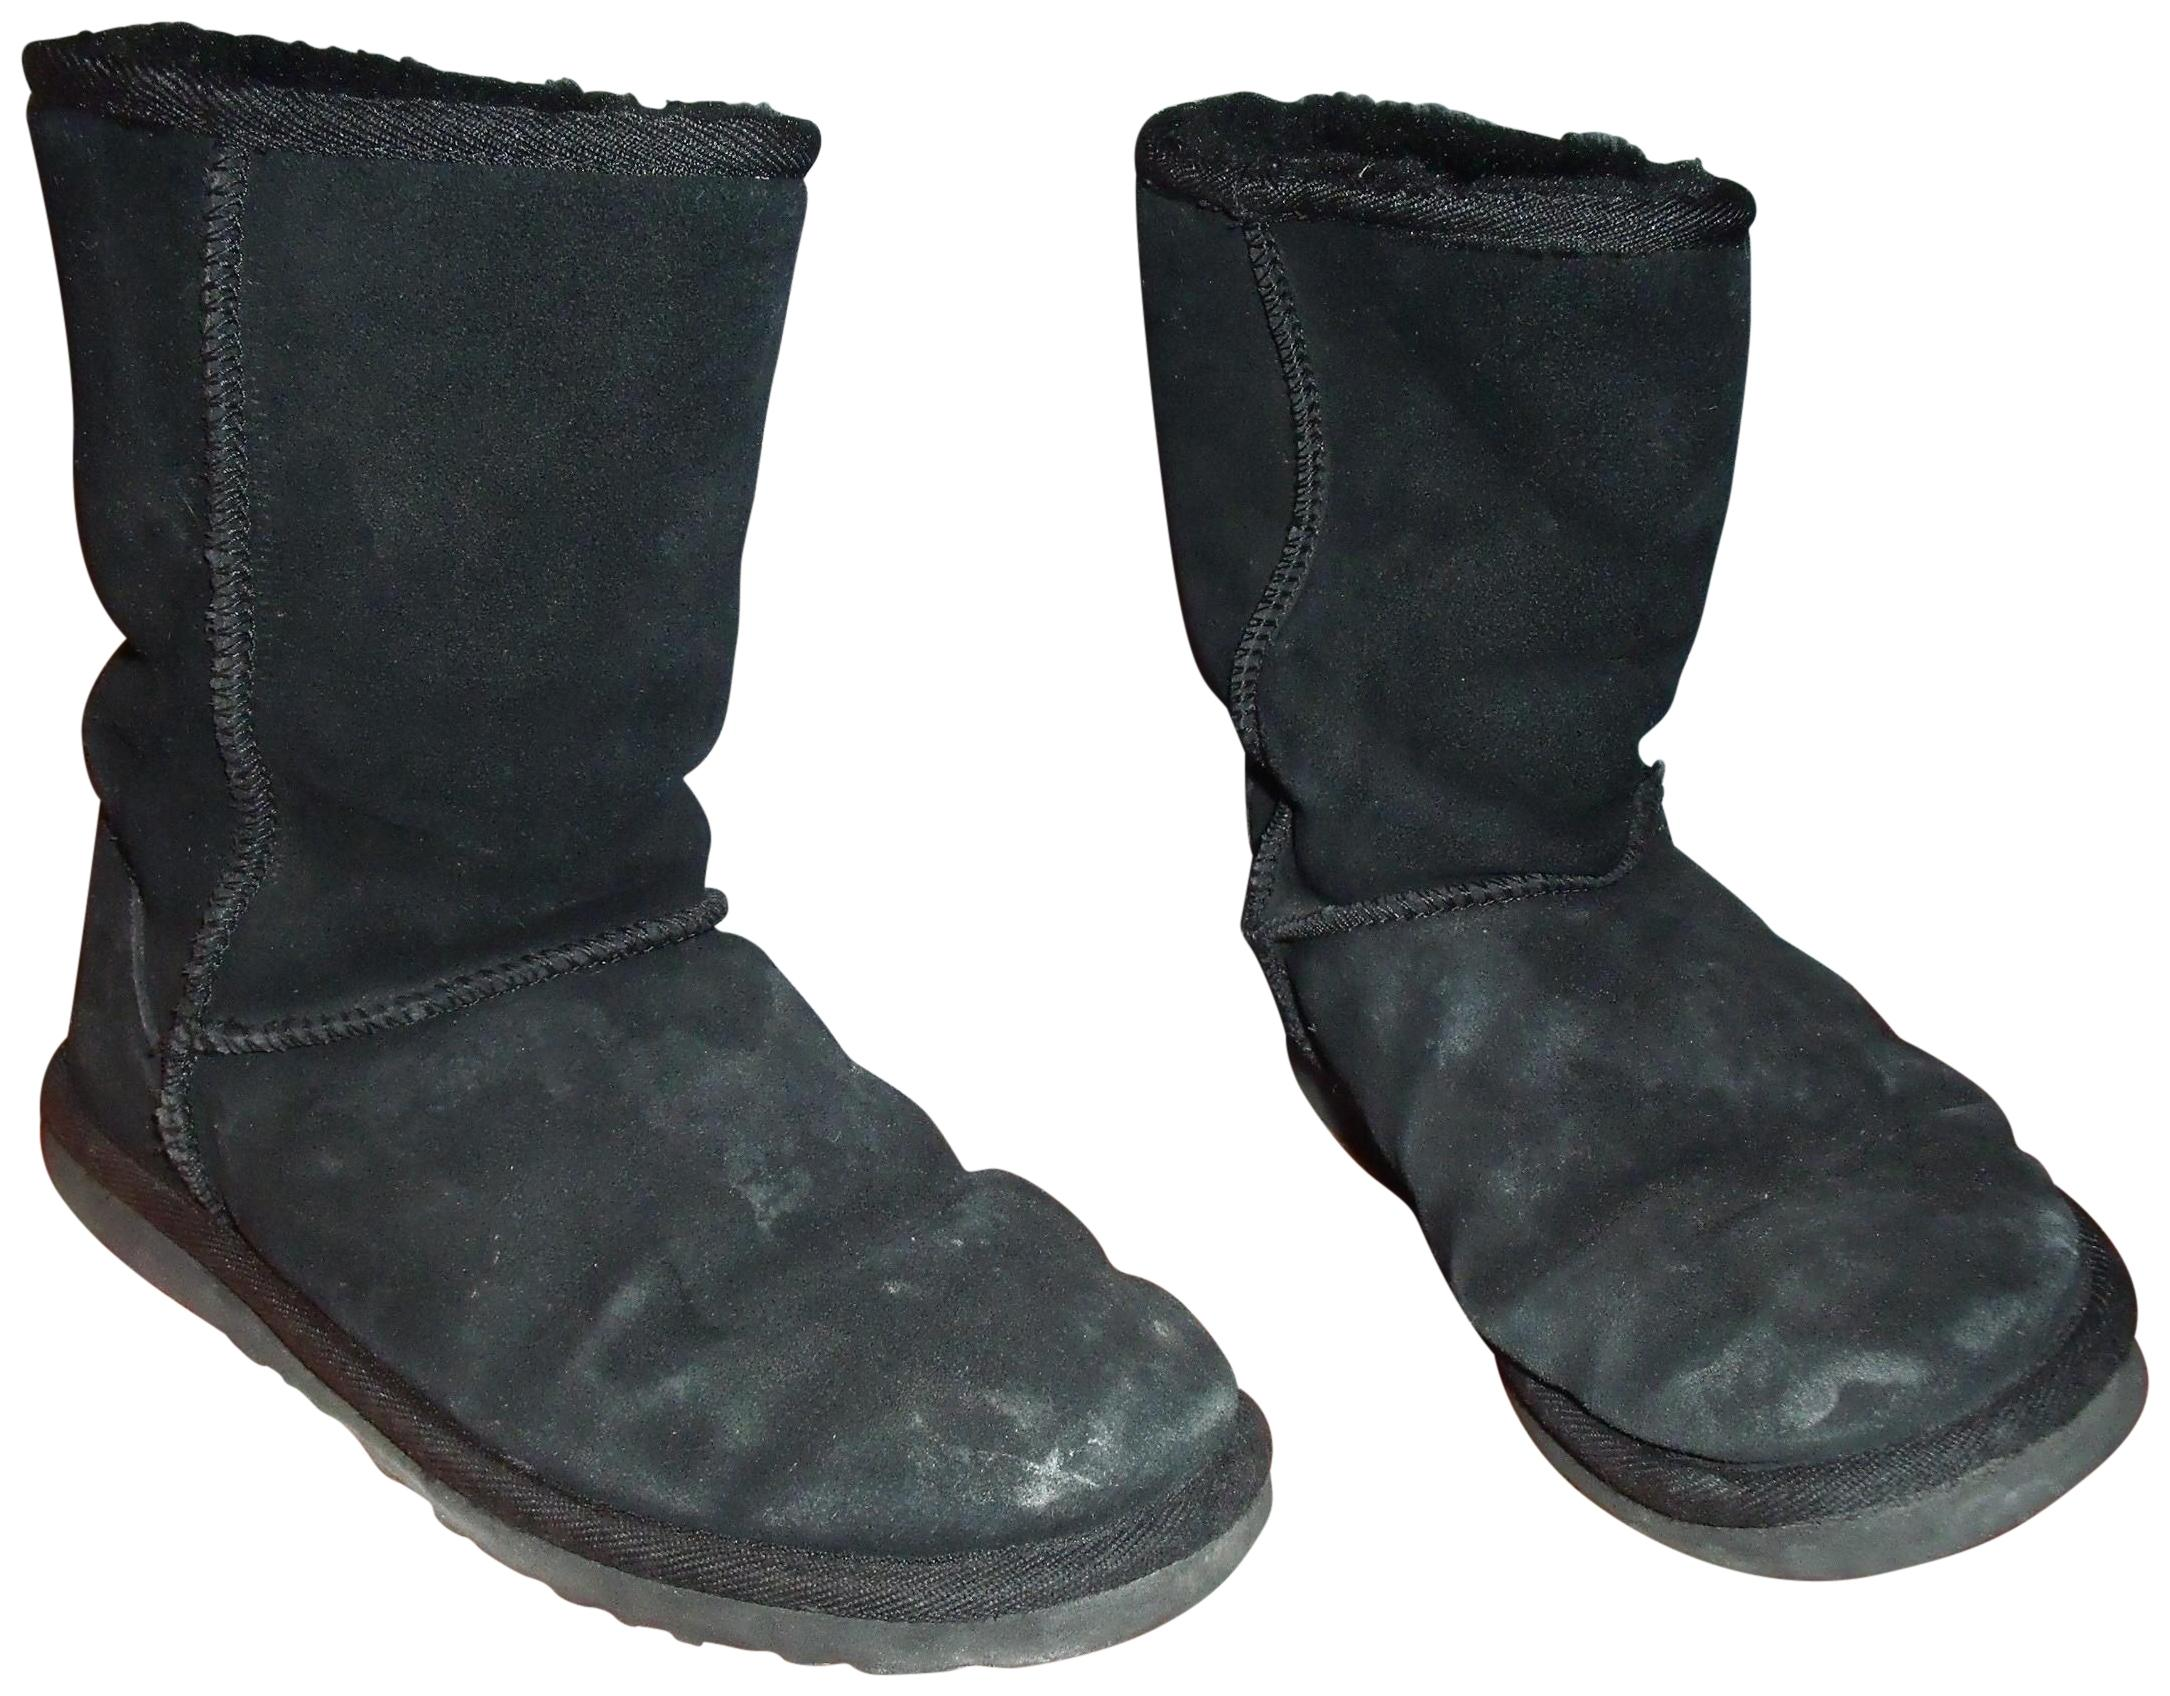 83427f0b0c9 Boots Sole Ugg Ugg Boots Style Style Rubber Rubber dCxfqnwPU